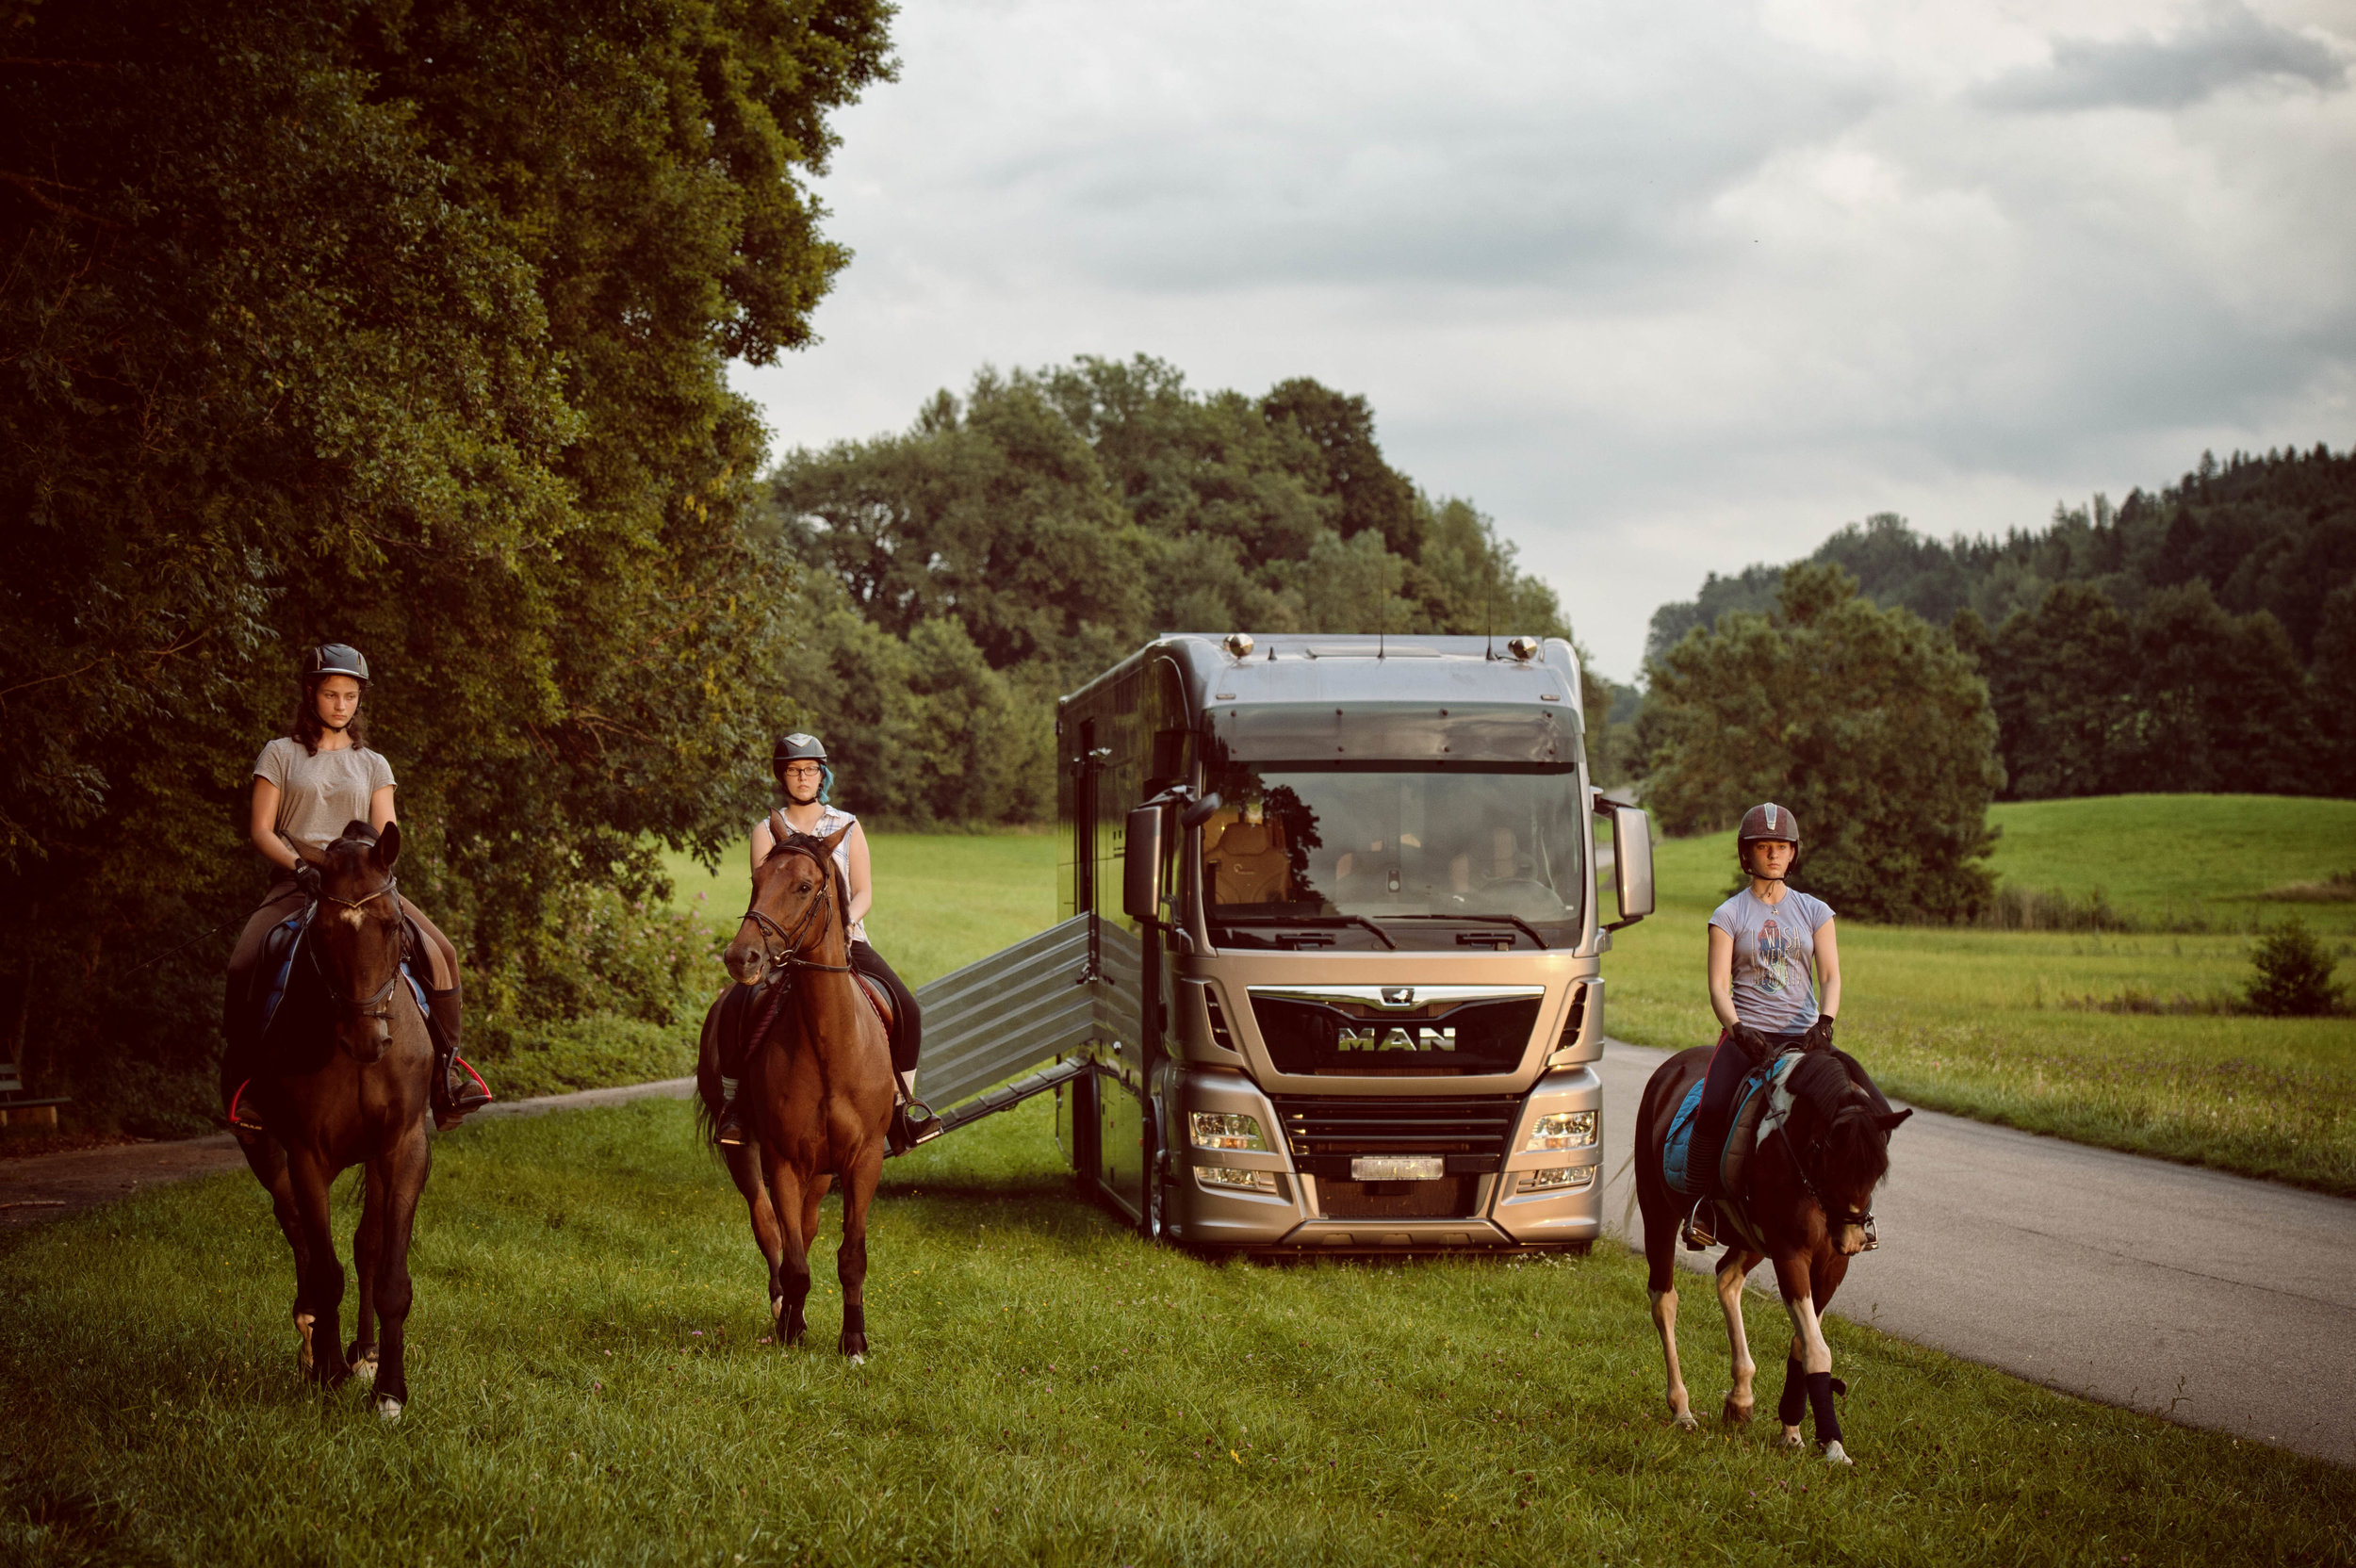 Aniko Towers Photo Horse Truck MAN Limited Edition-85.jpg